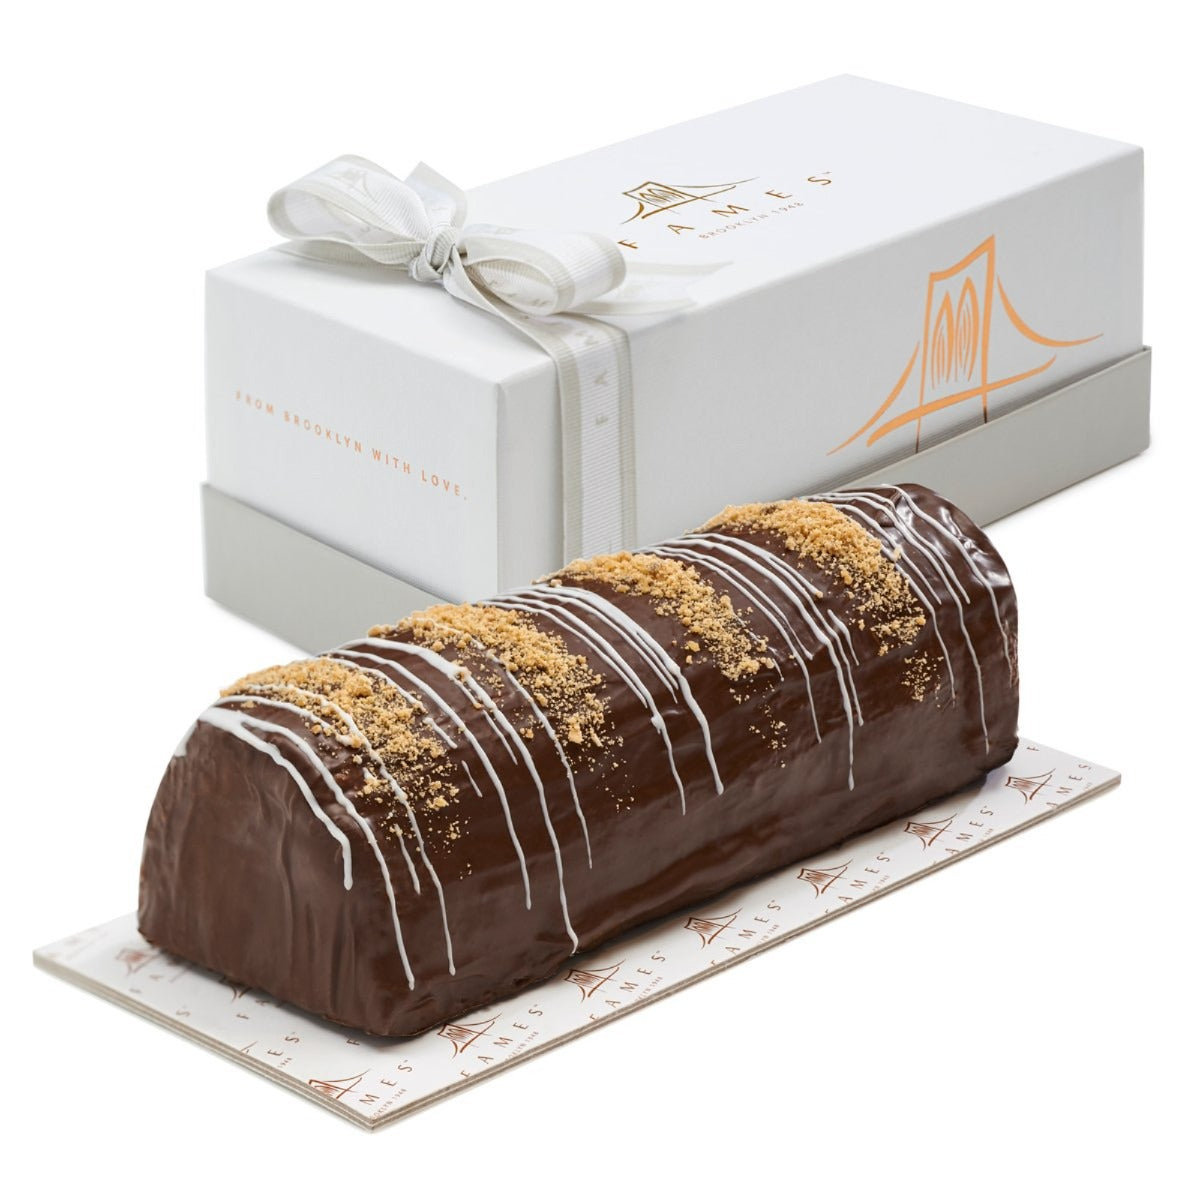 Fames Chocolates Truffle Halva Chocolate Log In Gift Box, Kosher